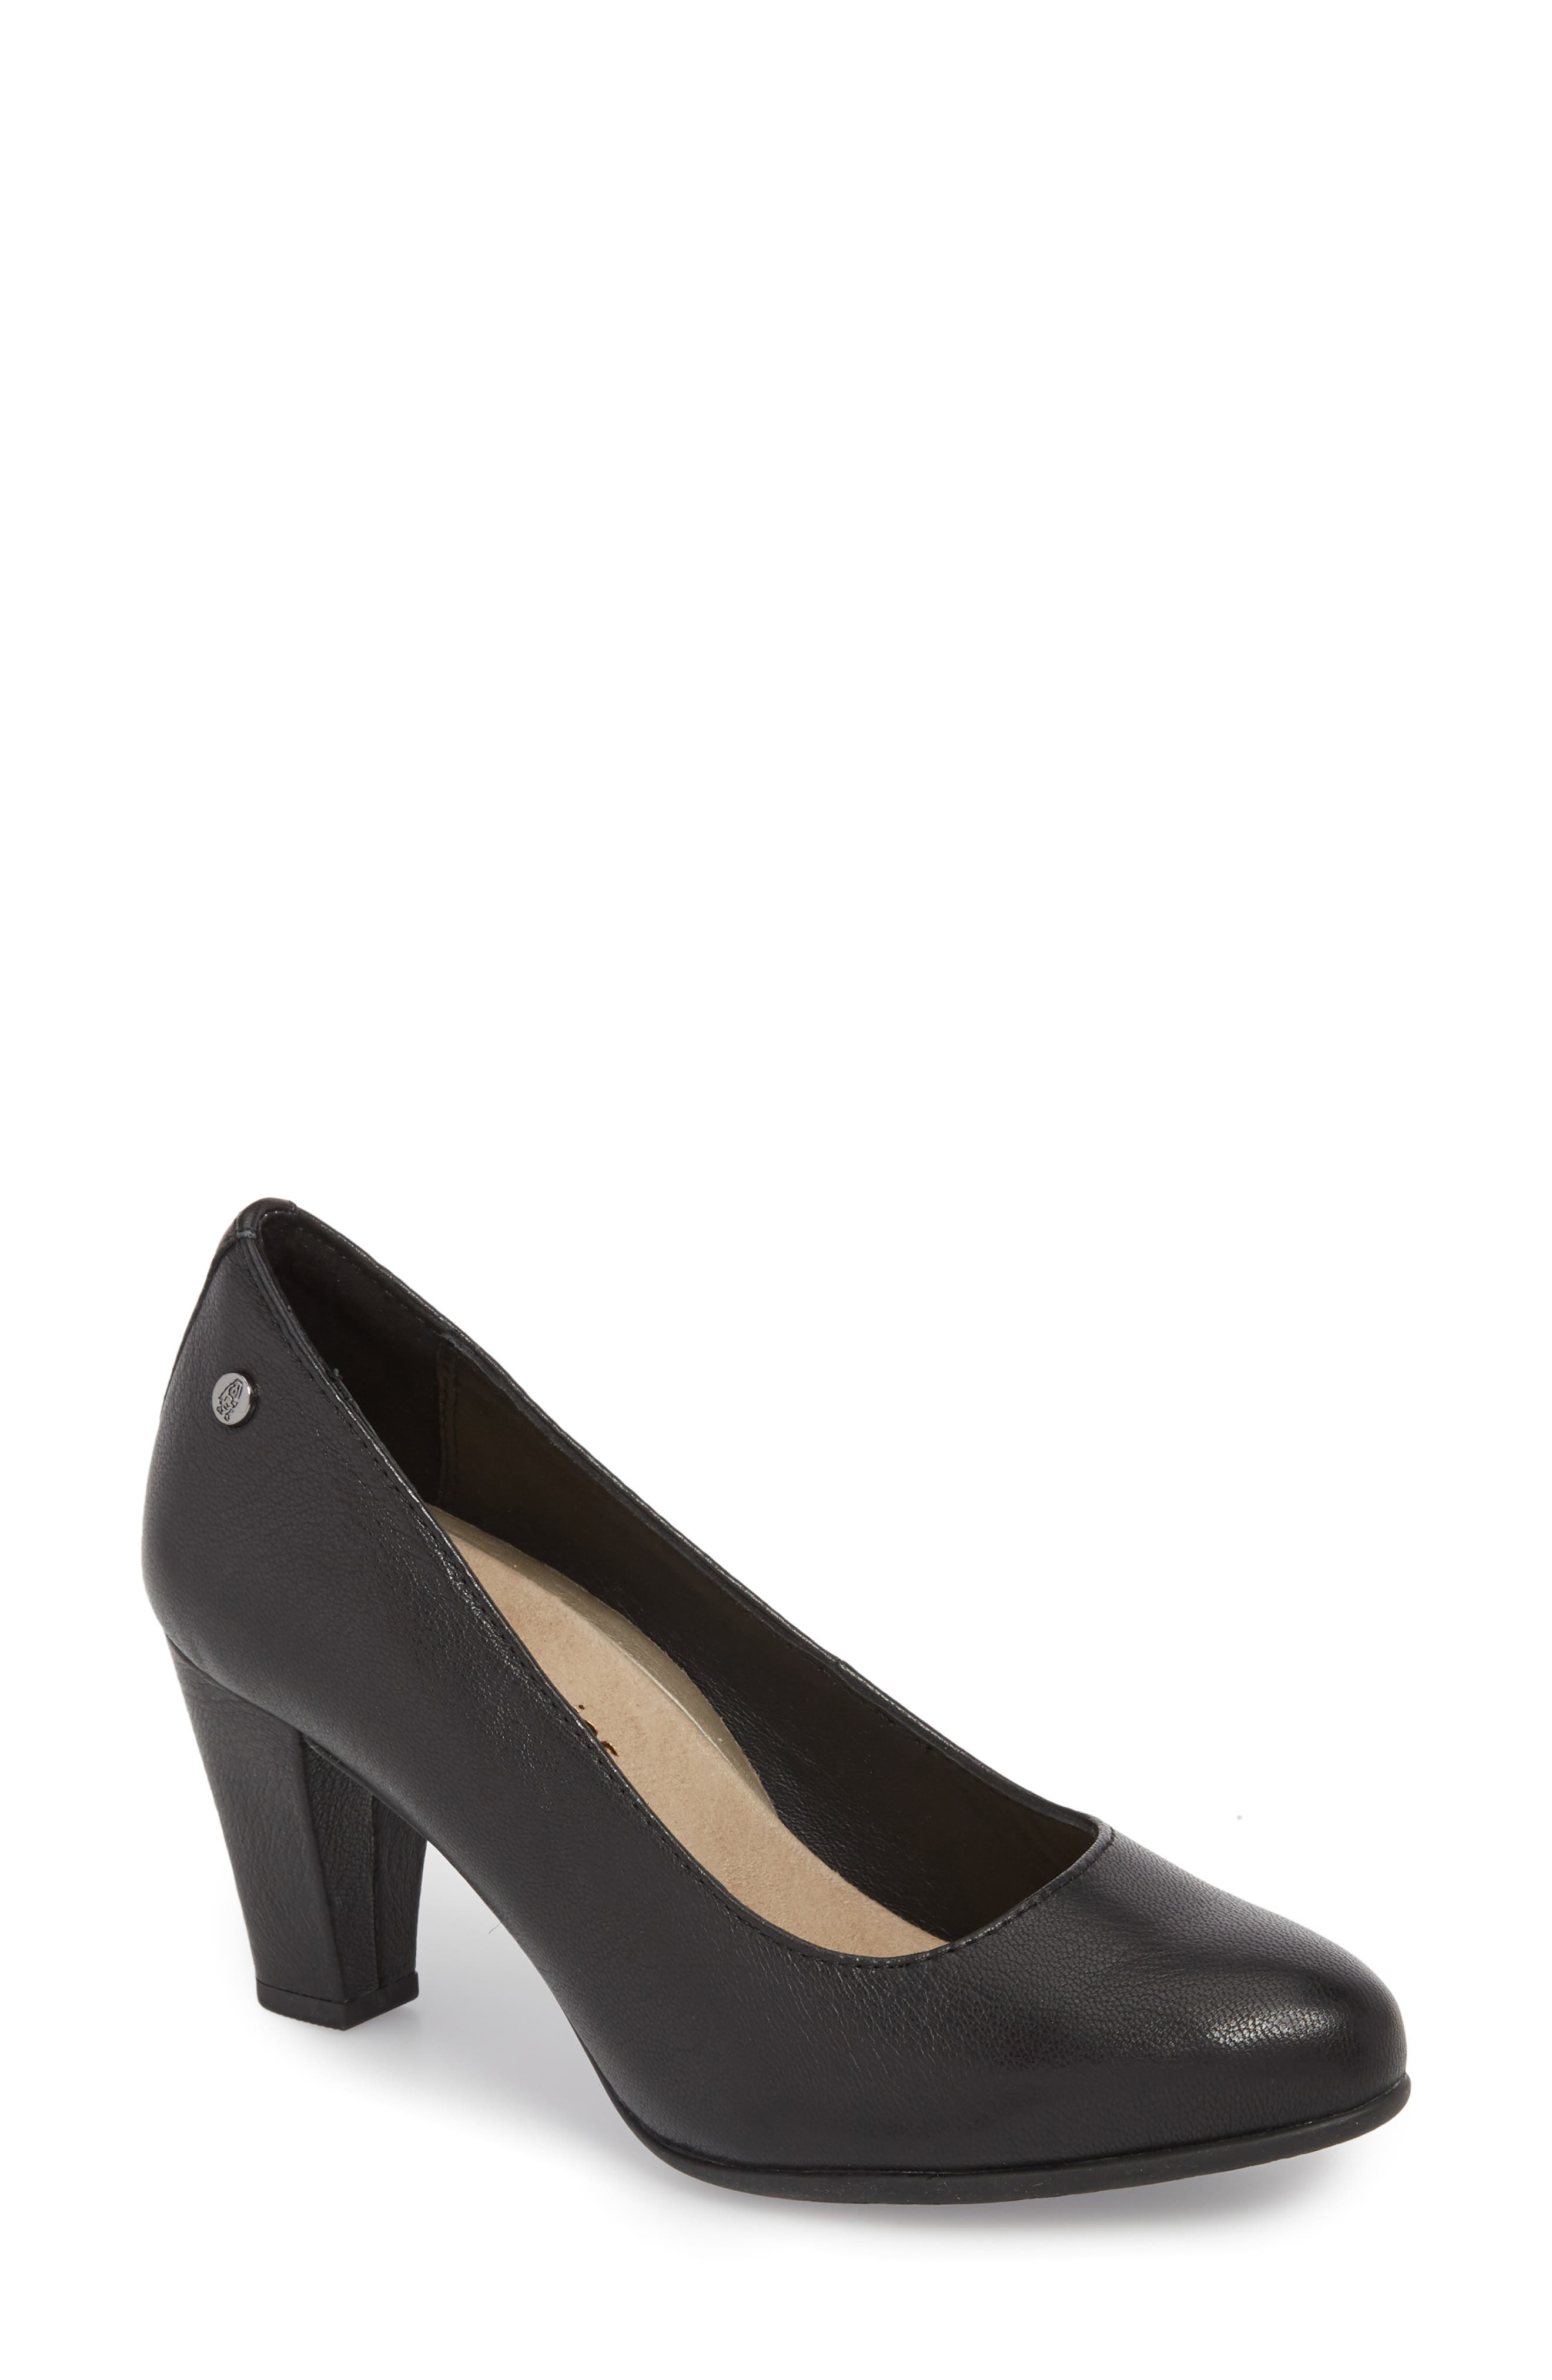 Minam Meaghan Pump,                         Main,                         color, Black Leather